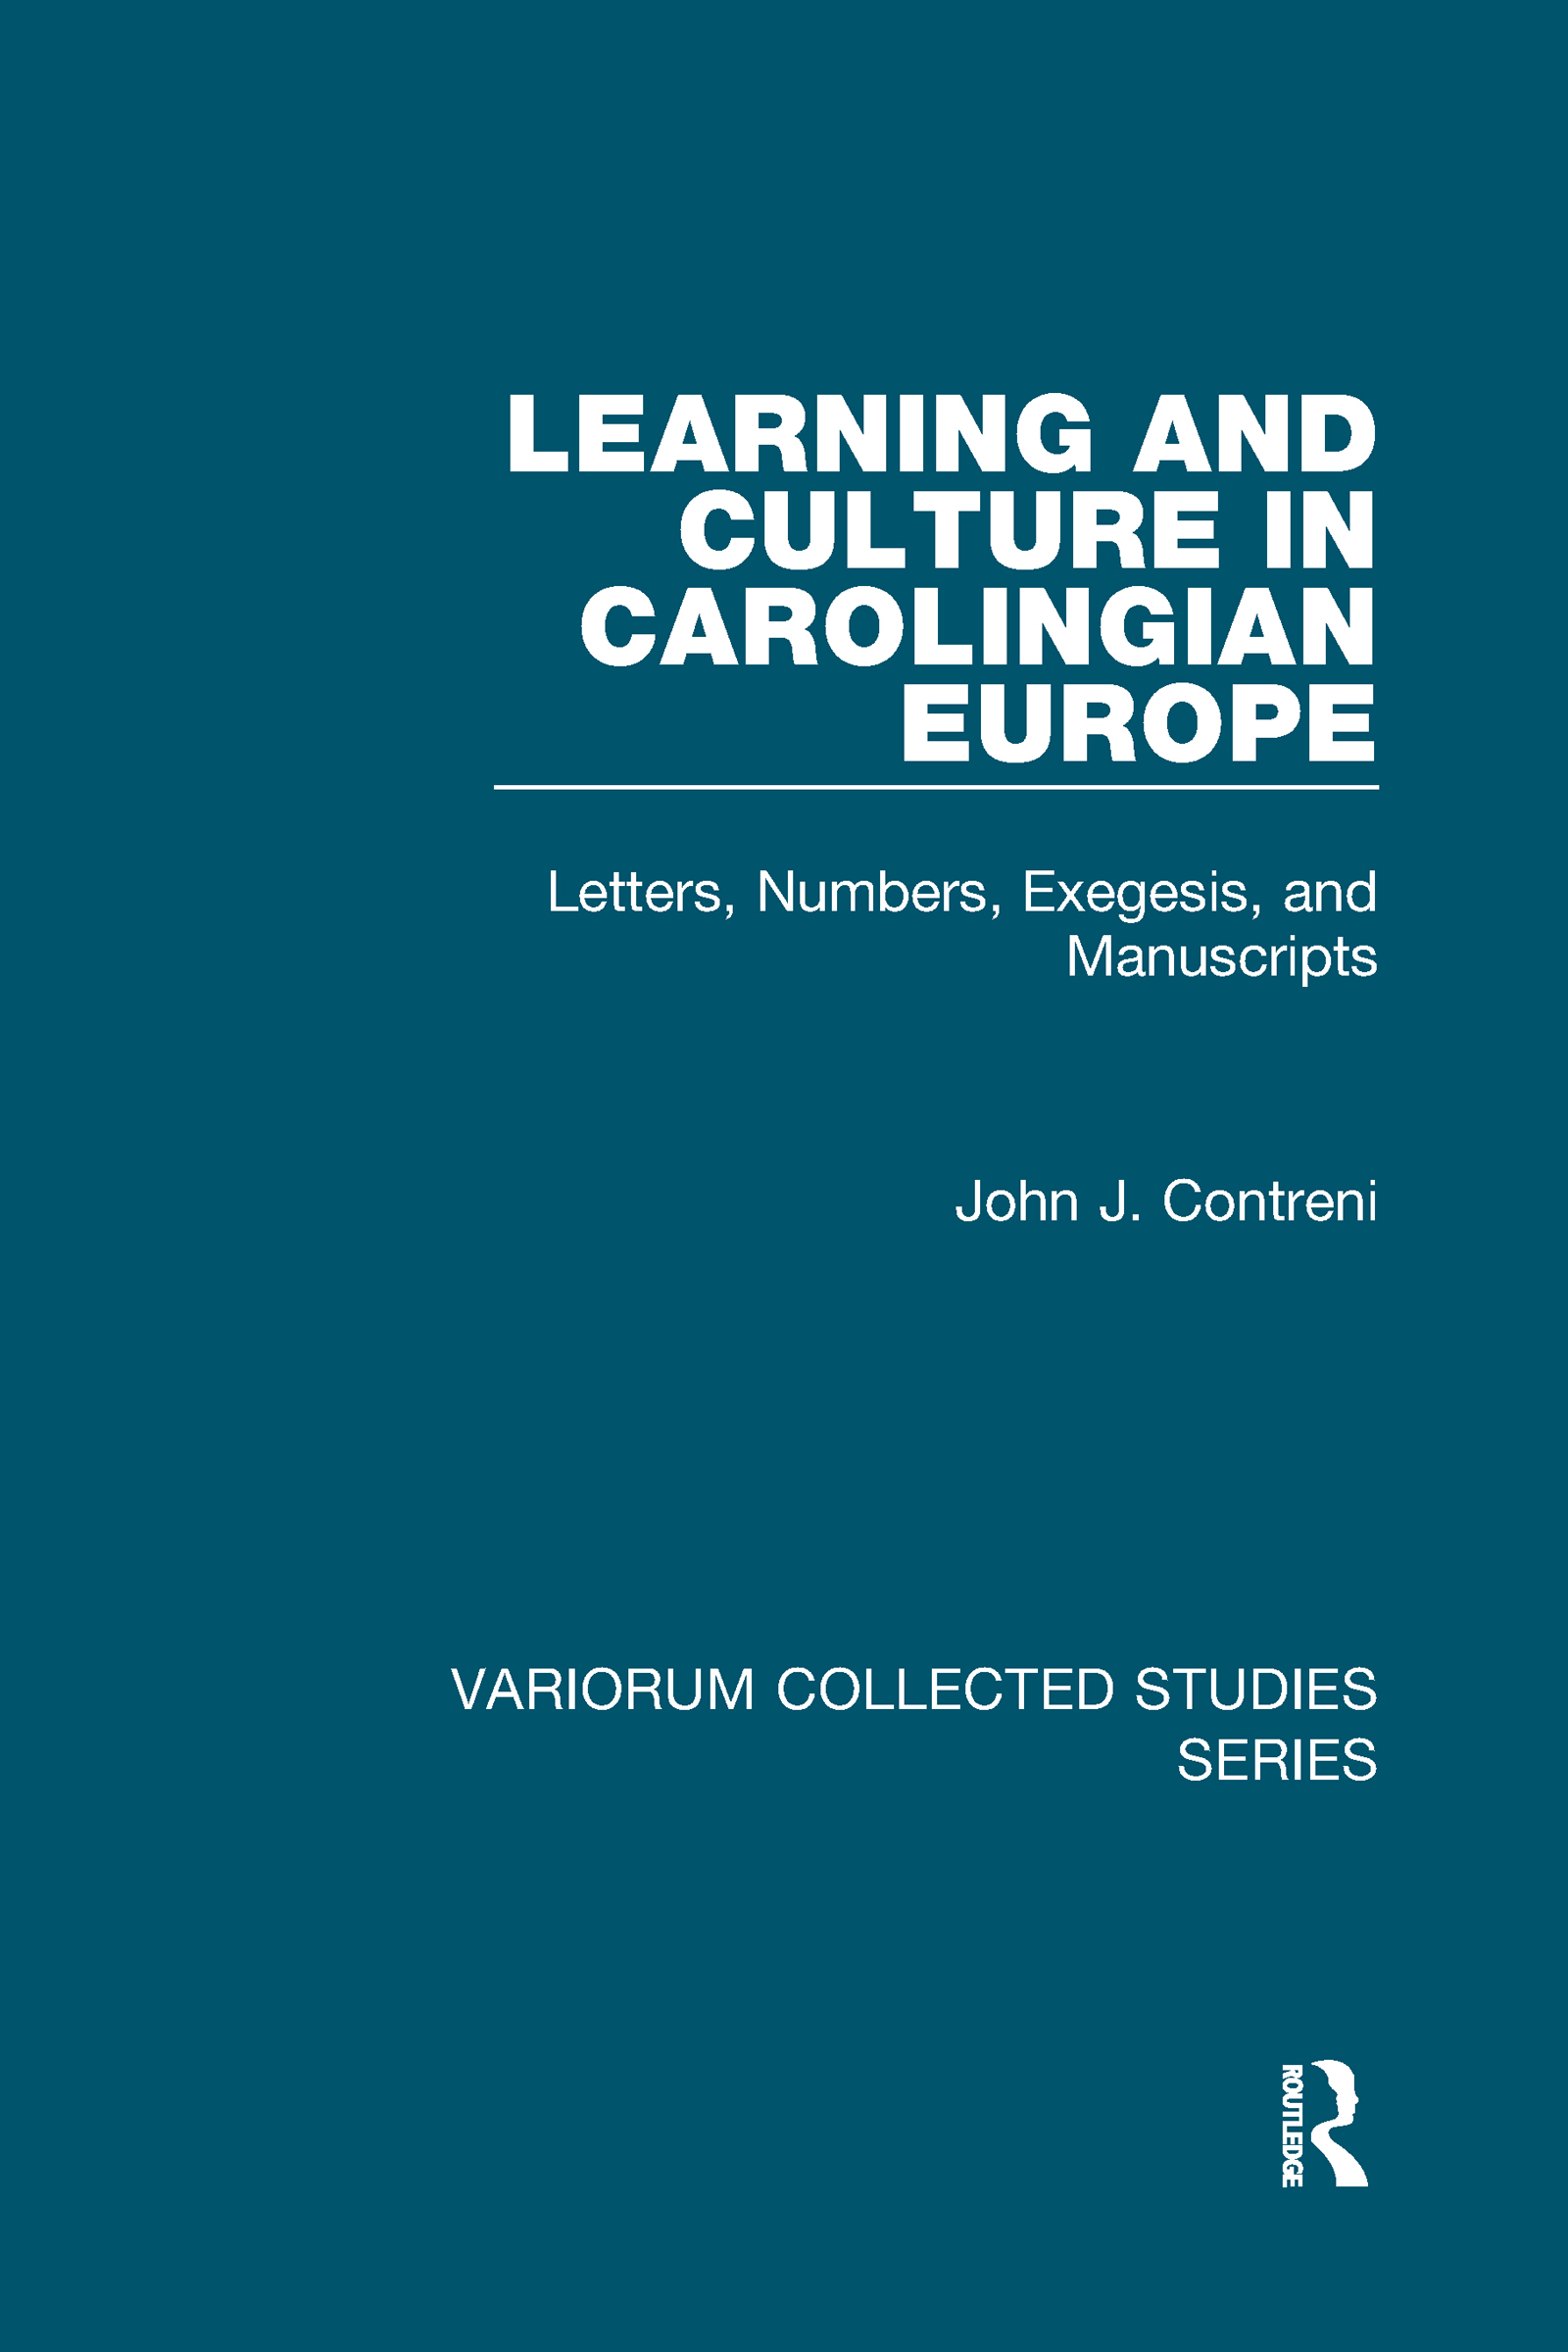 Learning and Culture in Carolingian Europe